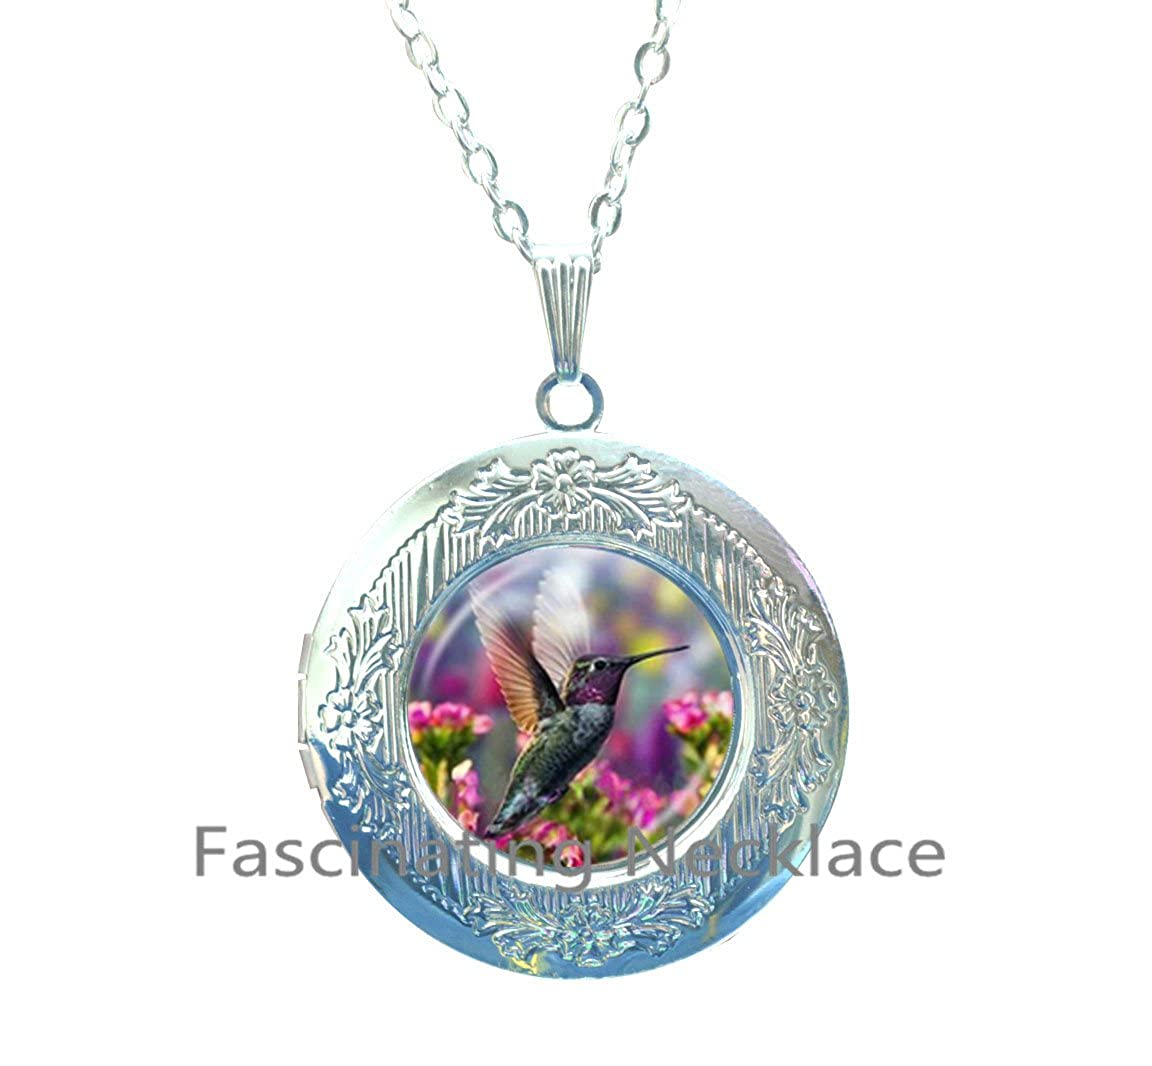 Hummingbird Locket Necklace Colorful Flower with Bird Locket Pendant Fashion Jewelry Glass Cabochon Time Gem Natural Animal Charm,AQ181